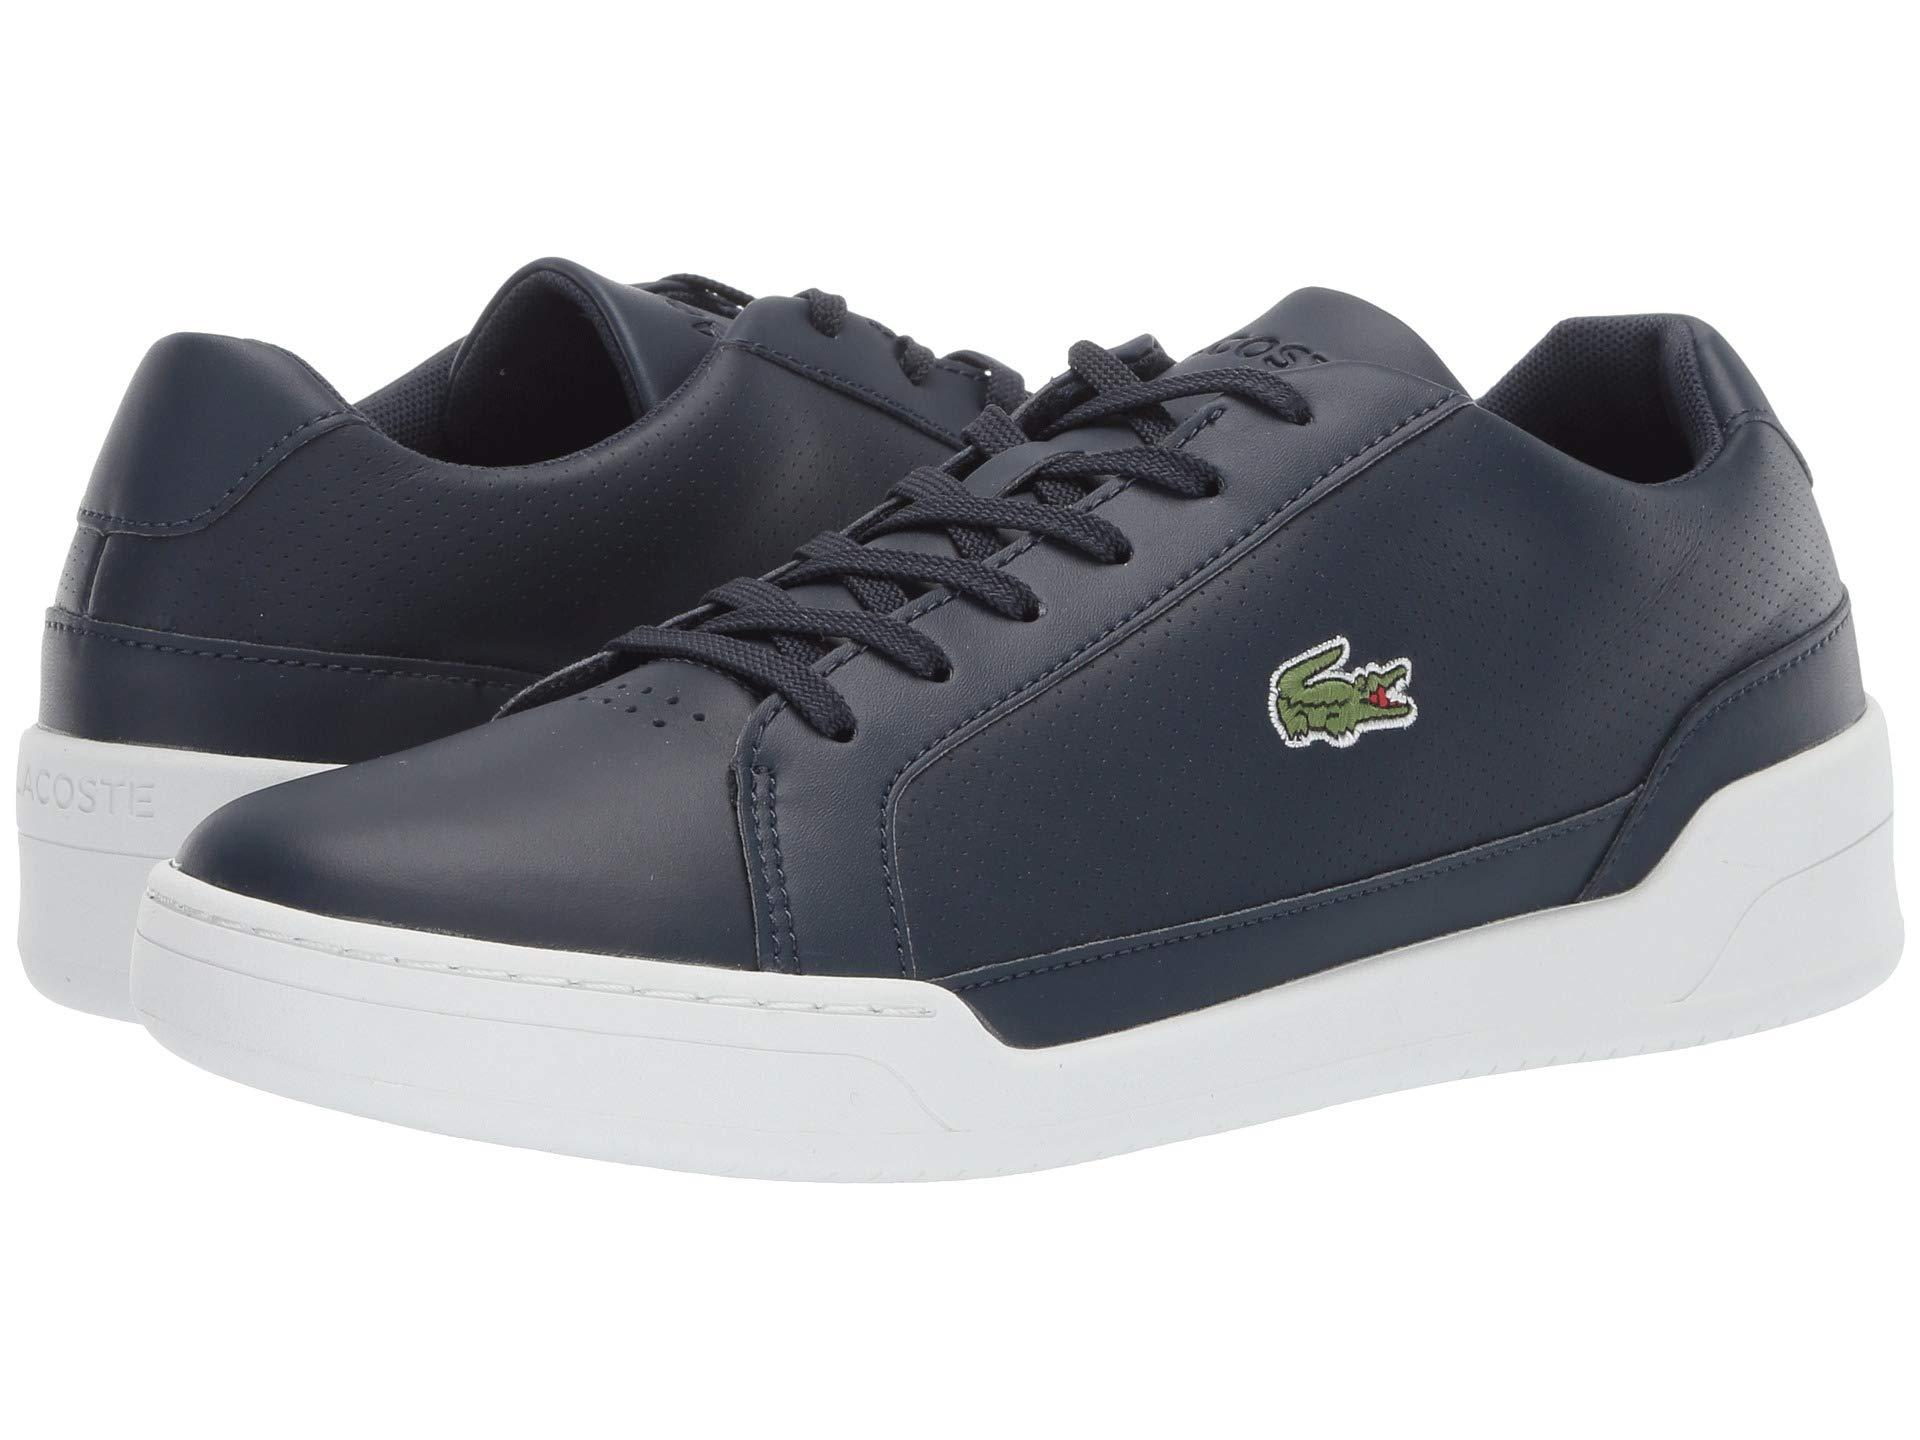 0ca44754fe31 Lyst - Lacoste Challenge 119 2 Sma (grey white) Men s Shoes in Blue ...